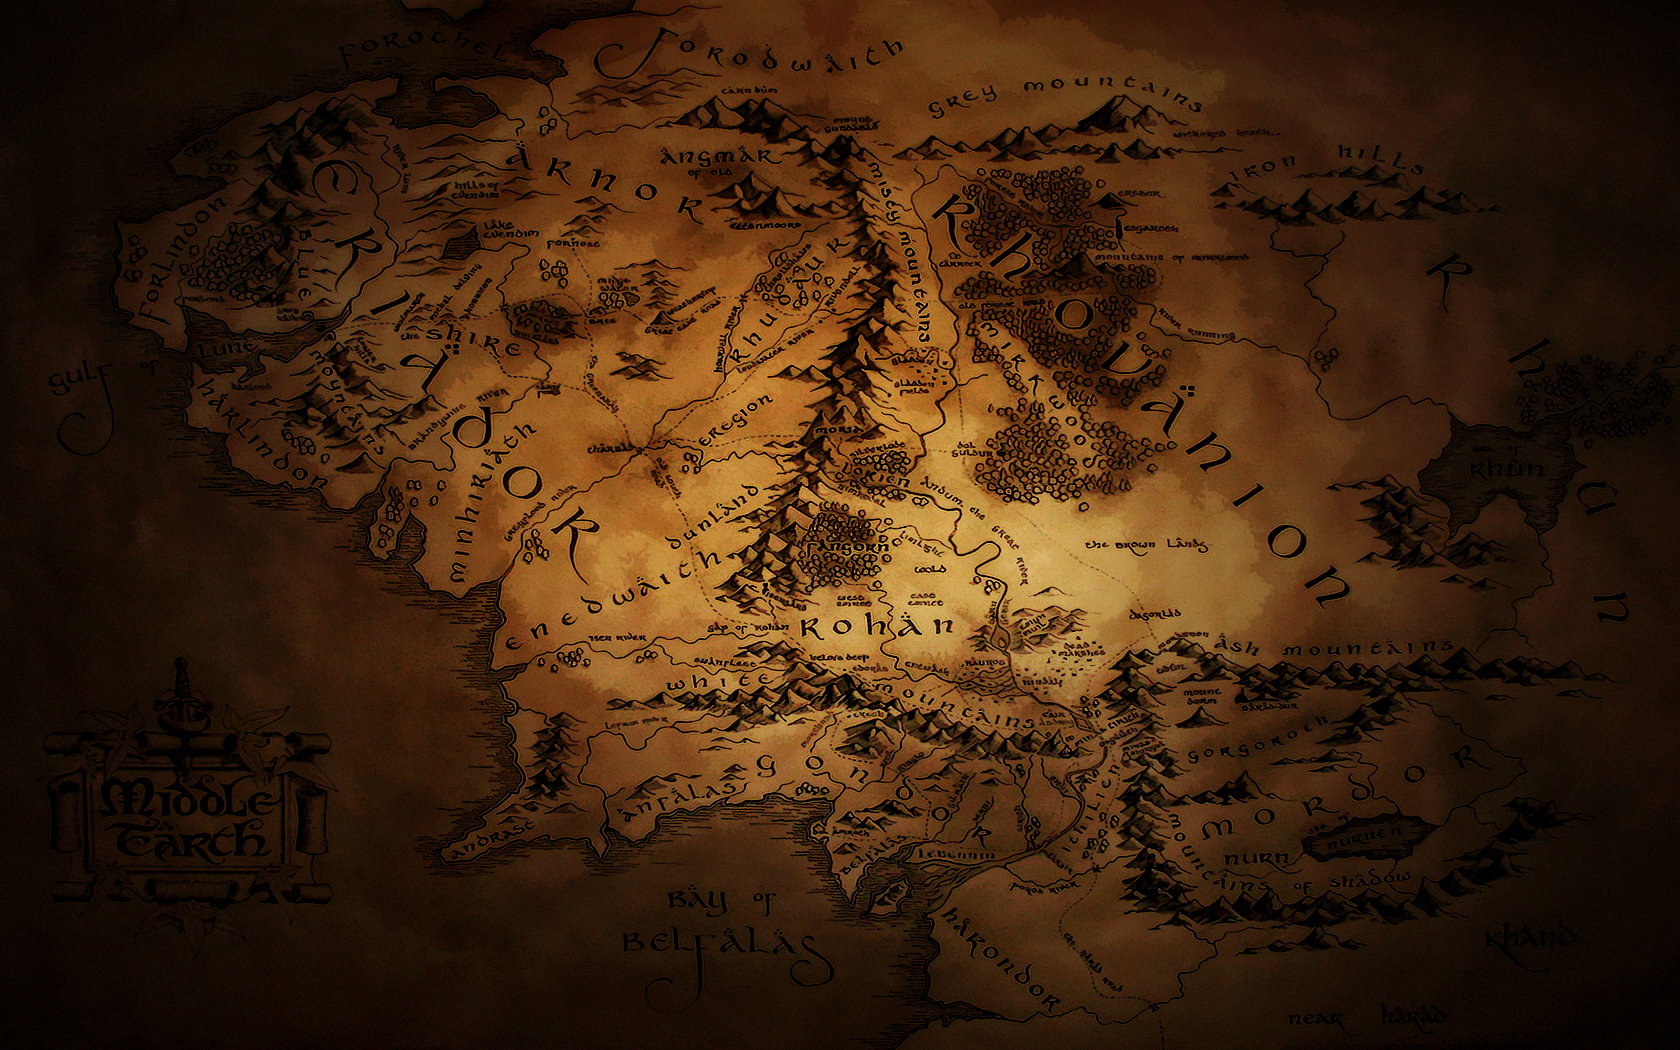 Captivating 30 map wall paper design inspiration of ordnance map wall paper ancient map wallpaper classy 576 map hd wallpapers backgrounds gumiabroncs Image collections